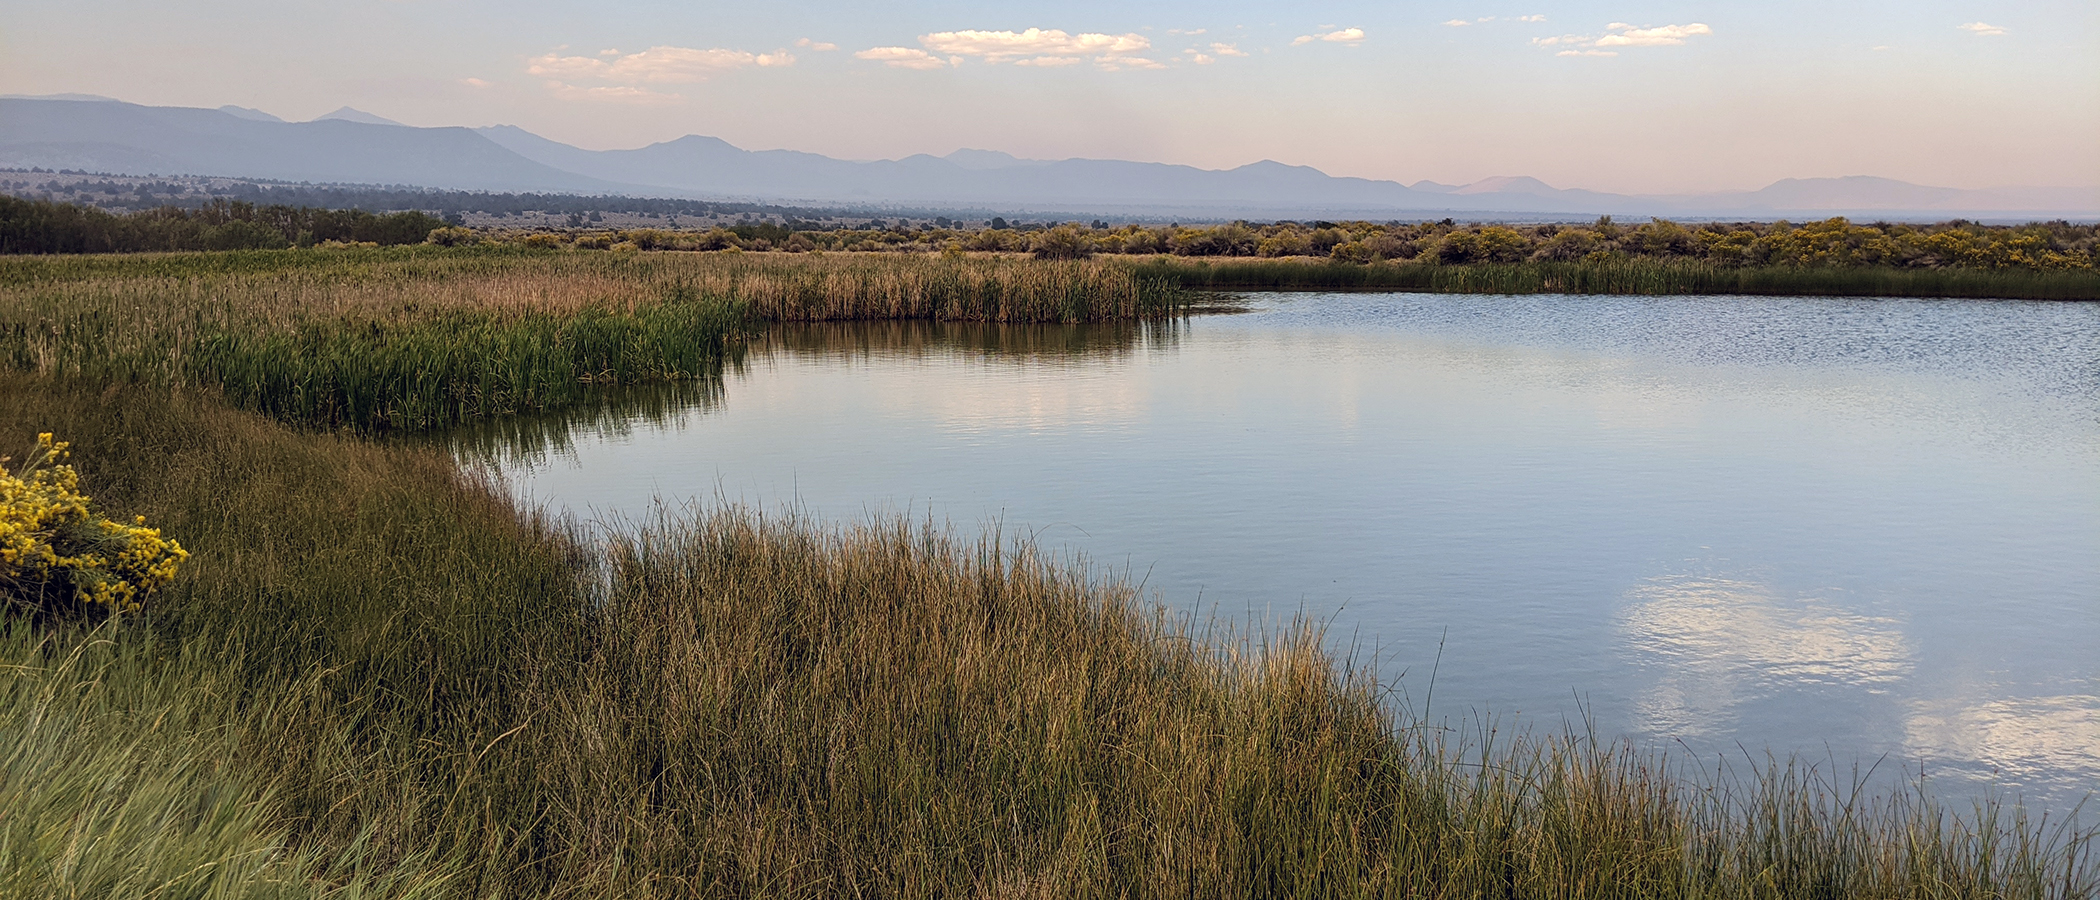 Green grasses line the still pond water, which reflects the light blue and pastel pink sky.